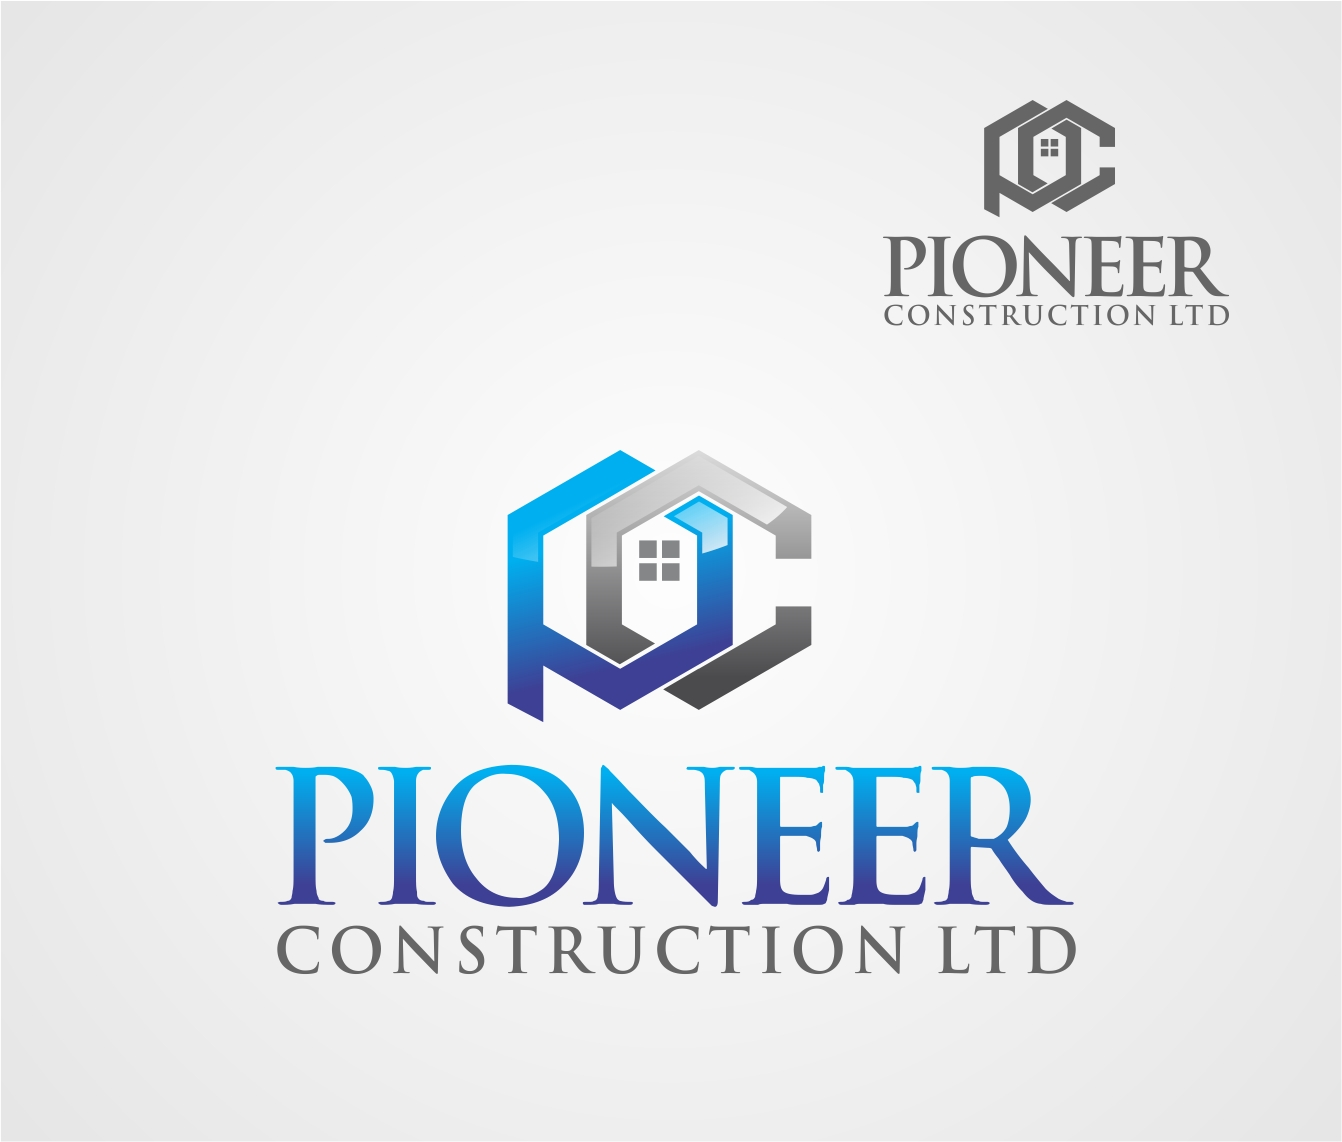 Logo Design by Reivan Ferdinan - Entry No. 3 in the Logo Design Contest Imaginative Logo Design for  Pioneer Construction Ltd.